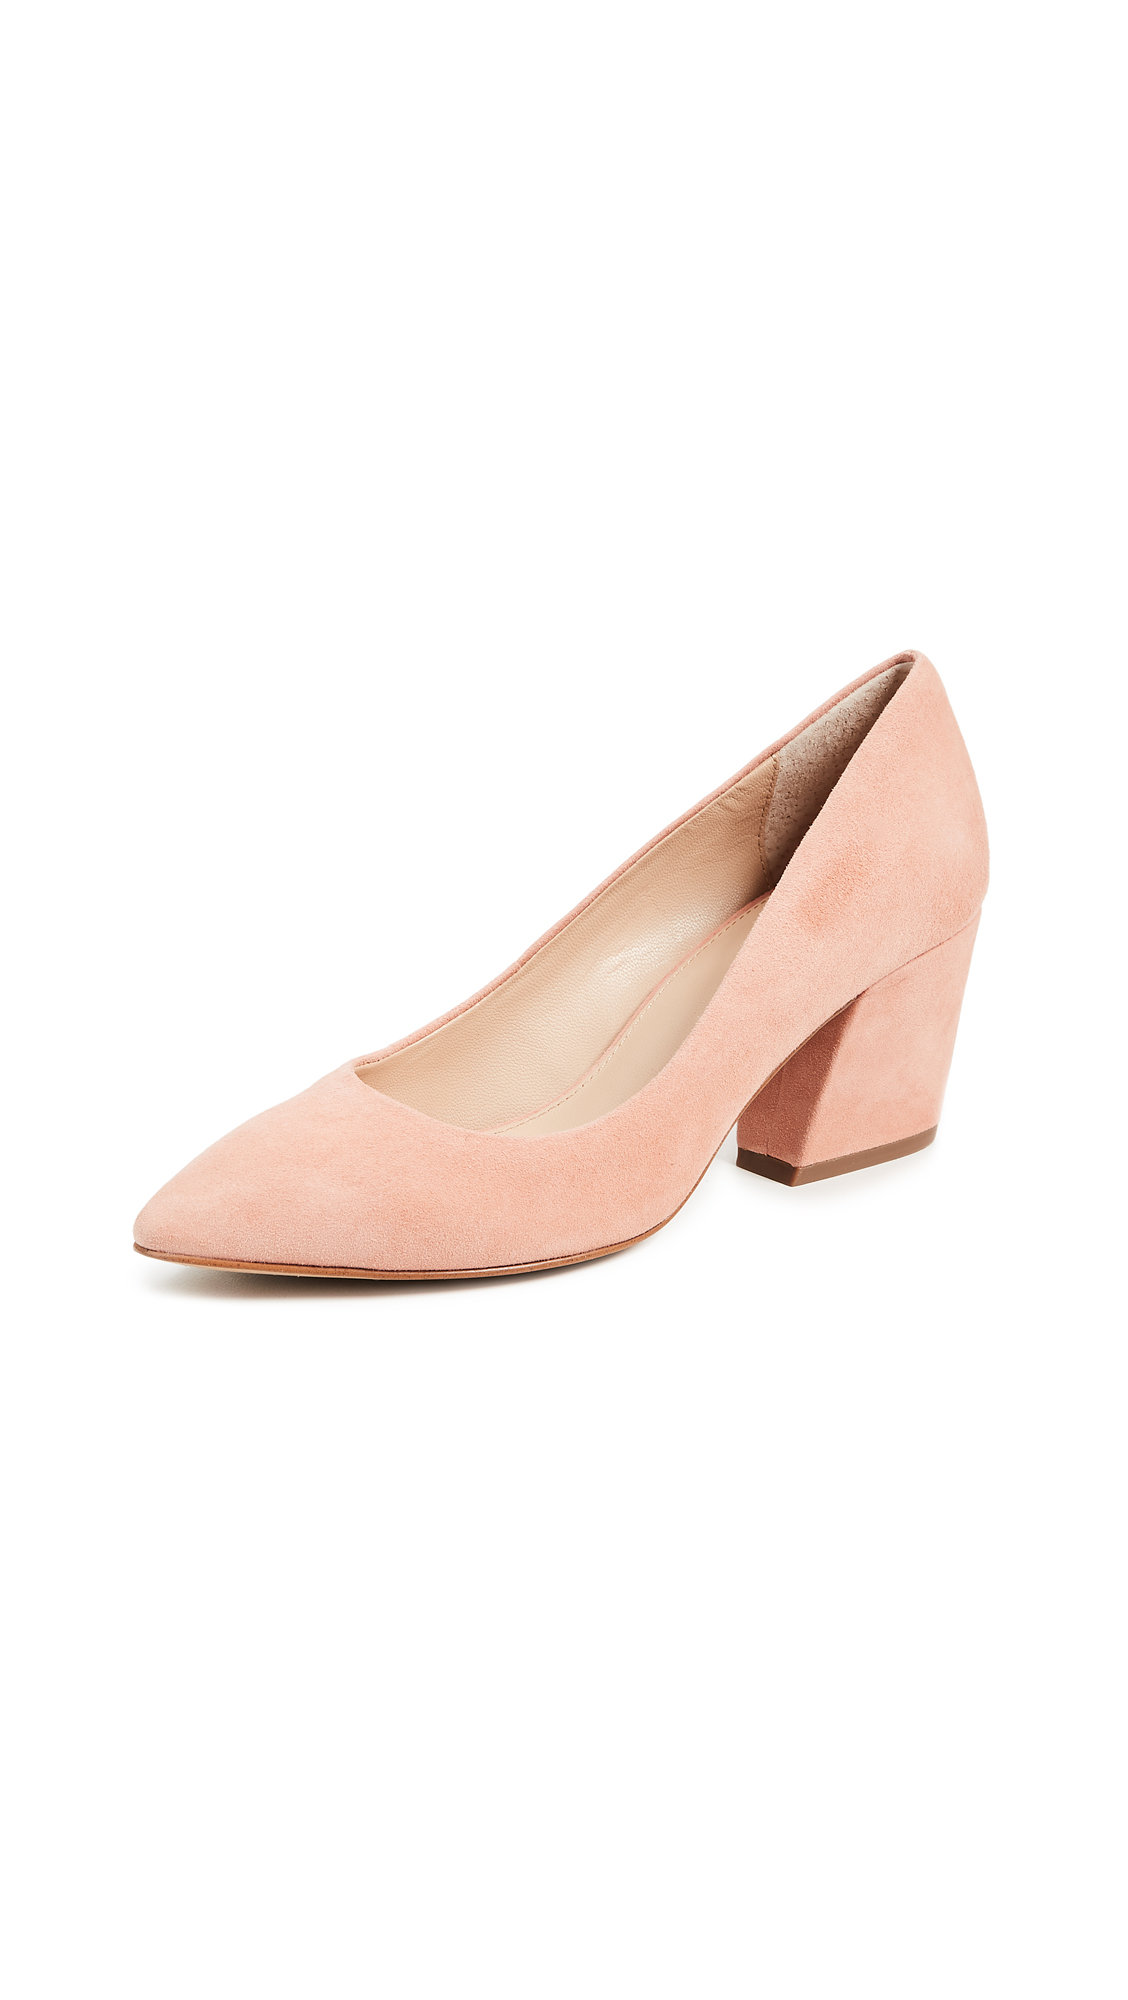 Botkier Stella Block Heel Pumps - Soft Peach